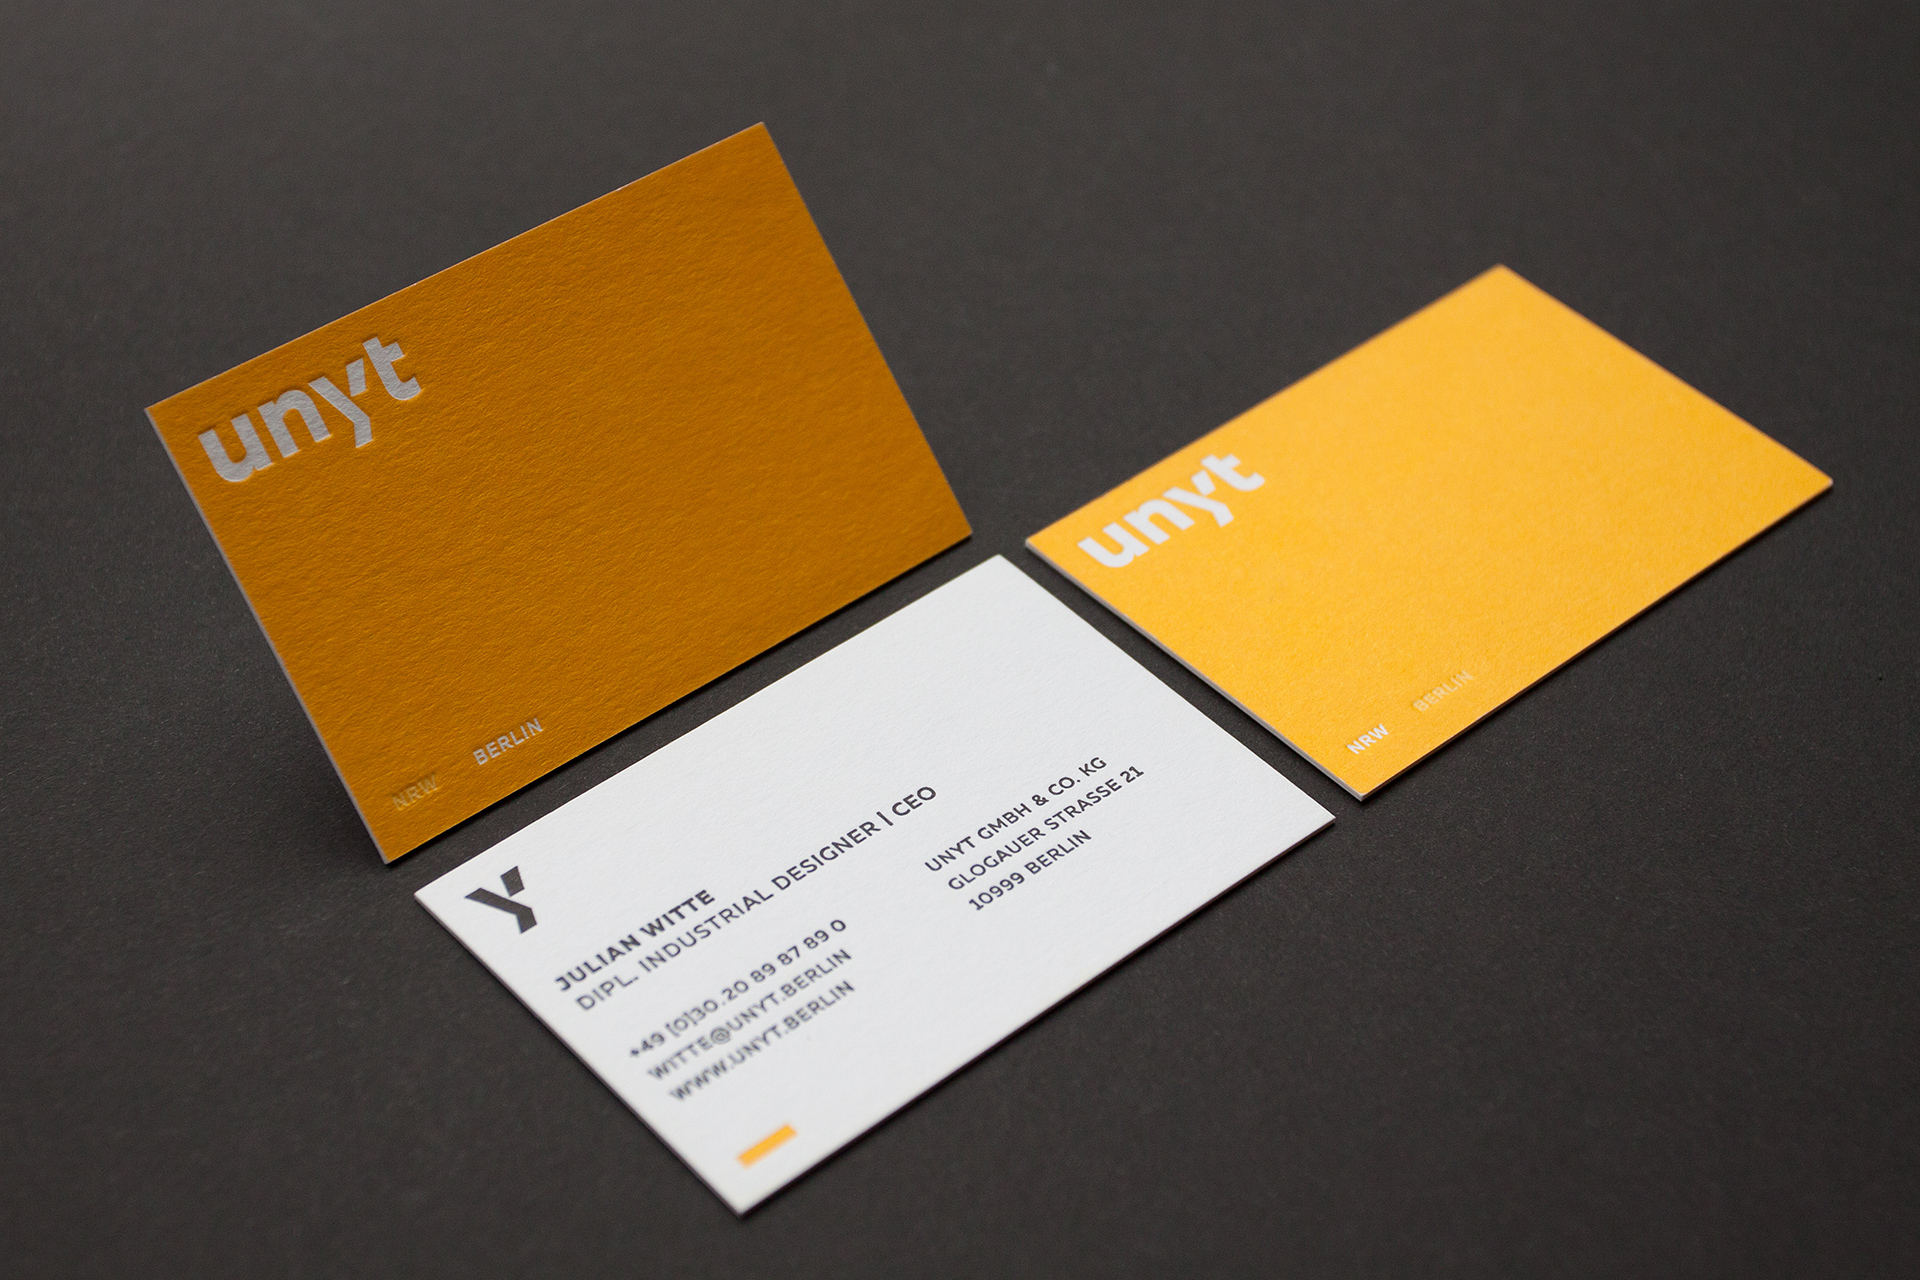 unyt-businesscard-2805